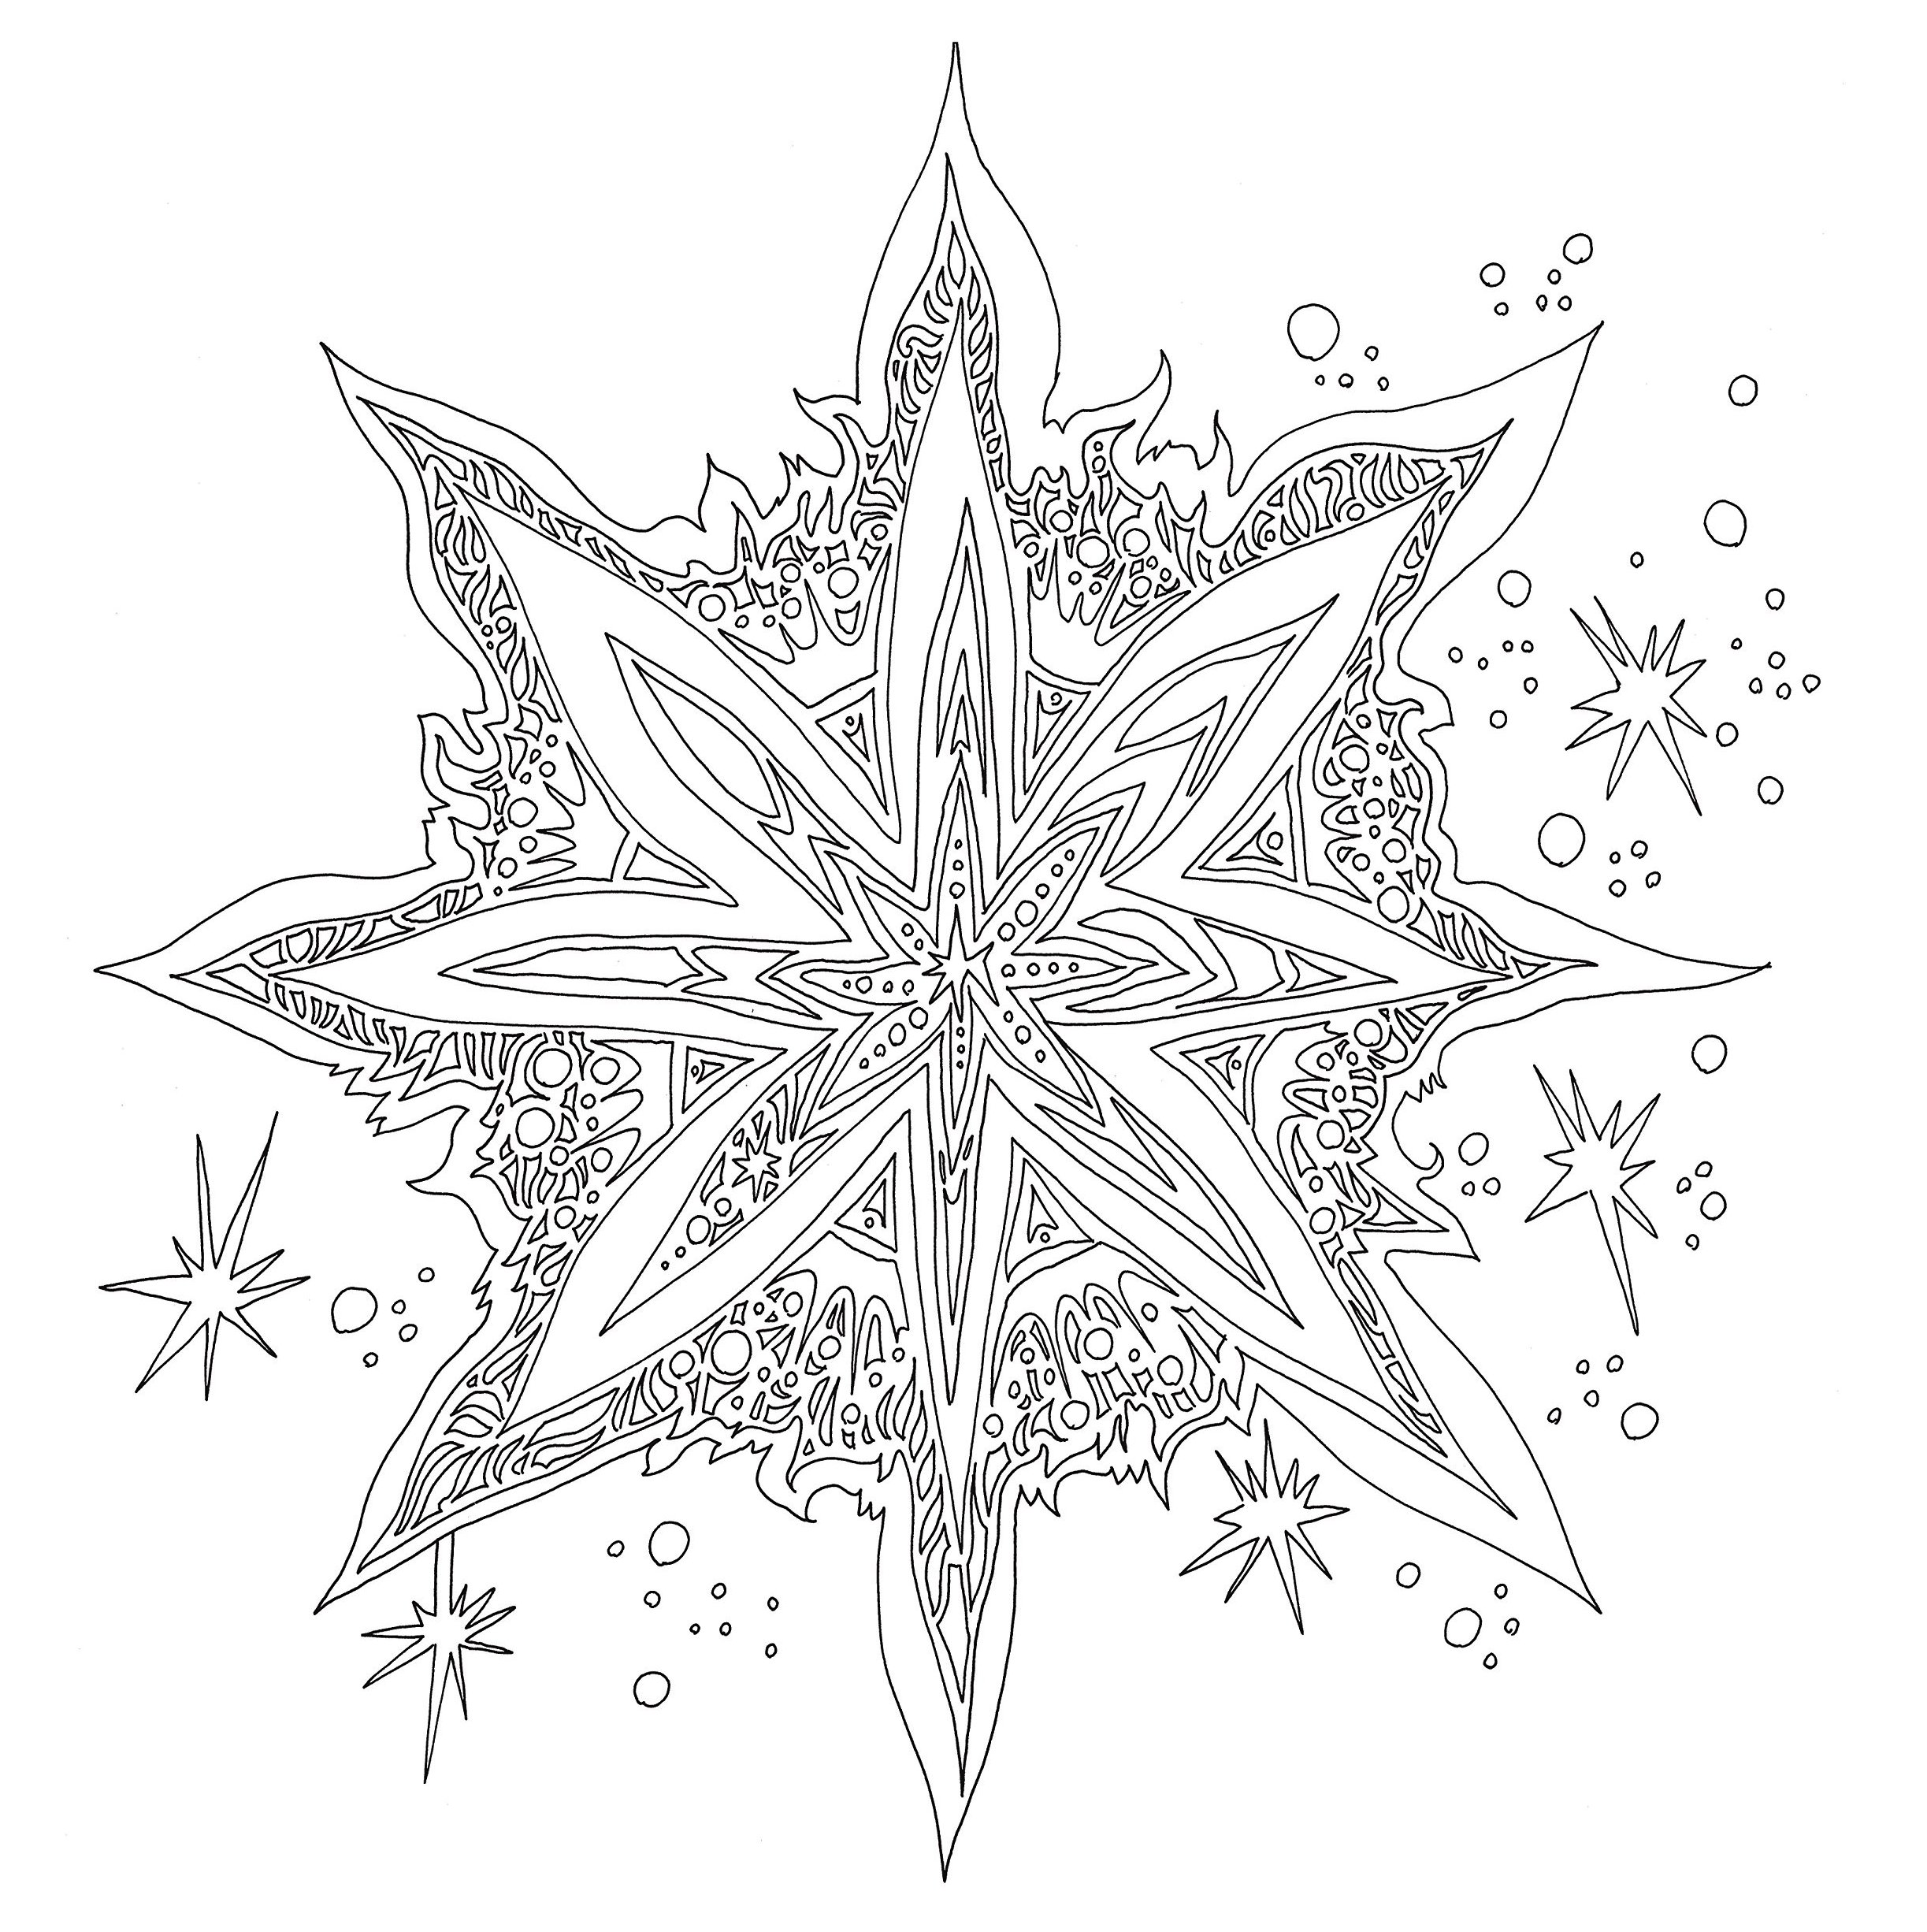 Magical-Christmas-Star-Coloring-Book-Lizzie-Mary